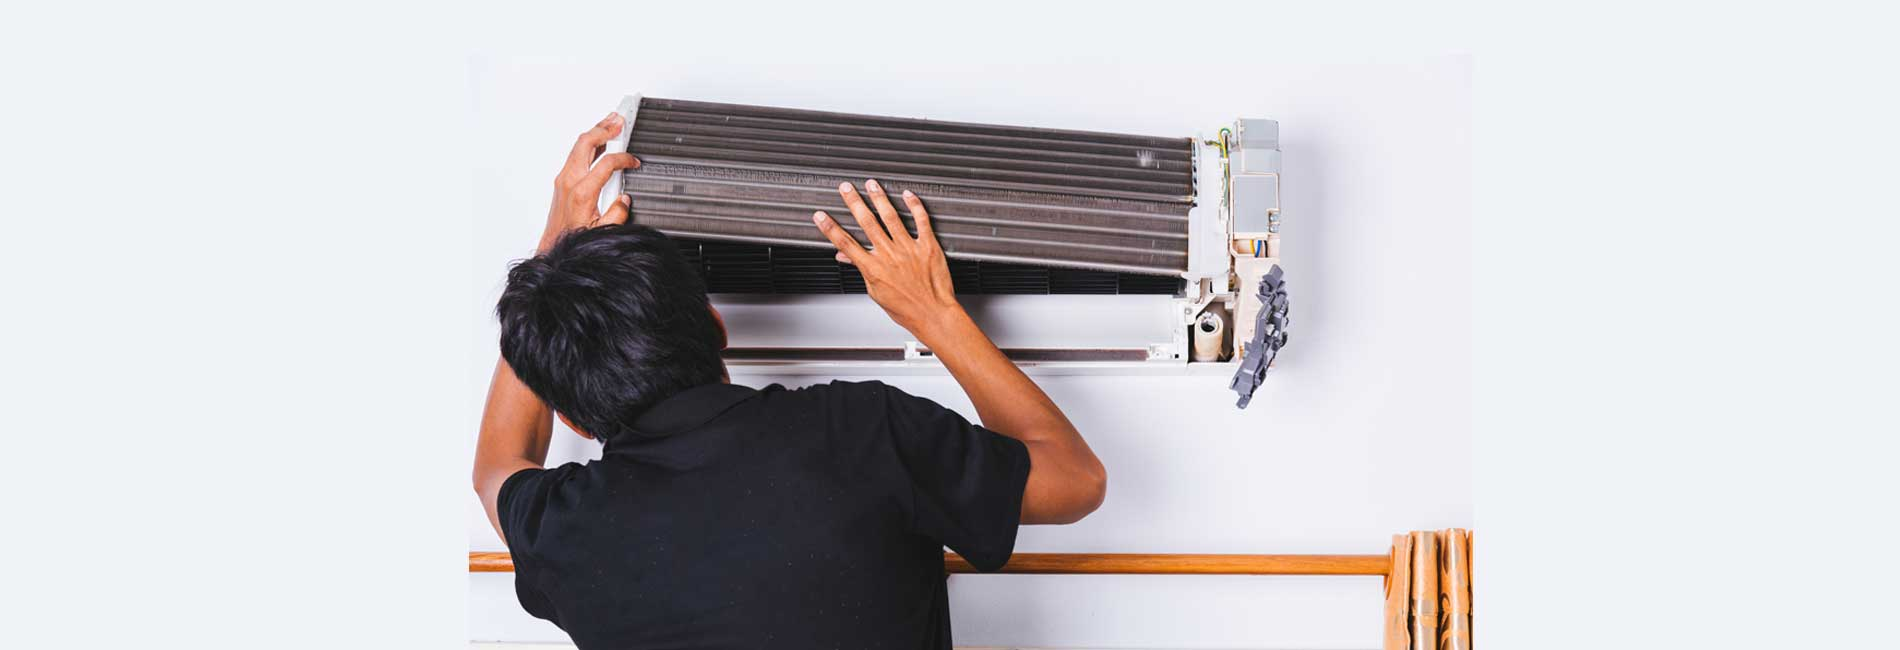 AC Uninstallation in Injambakkam